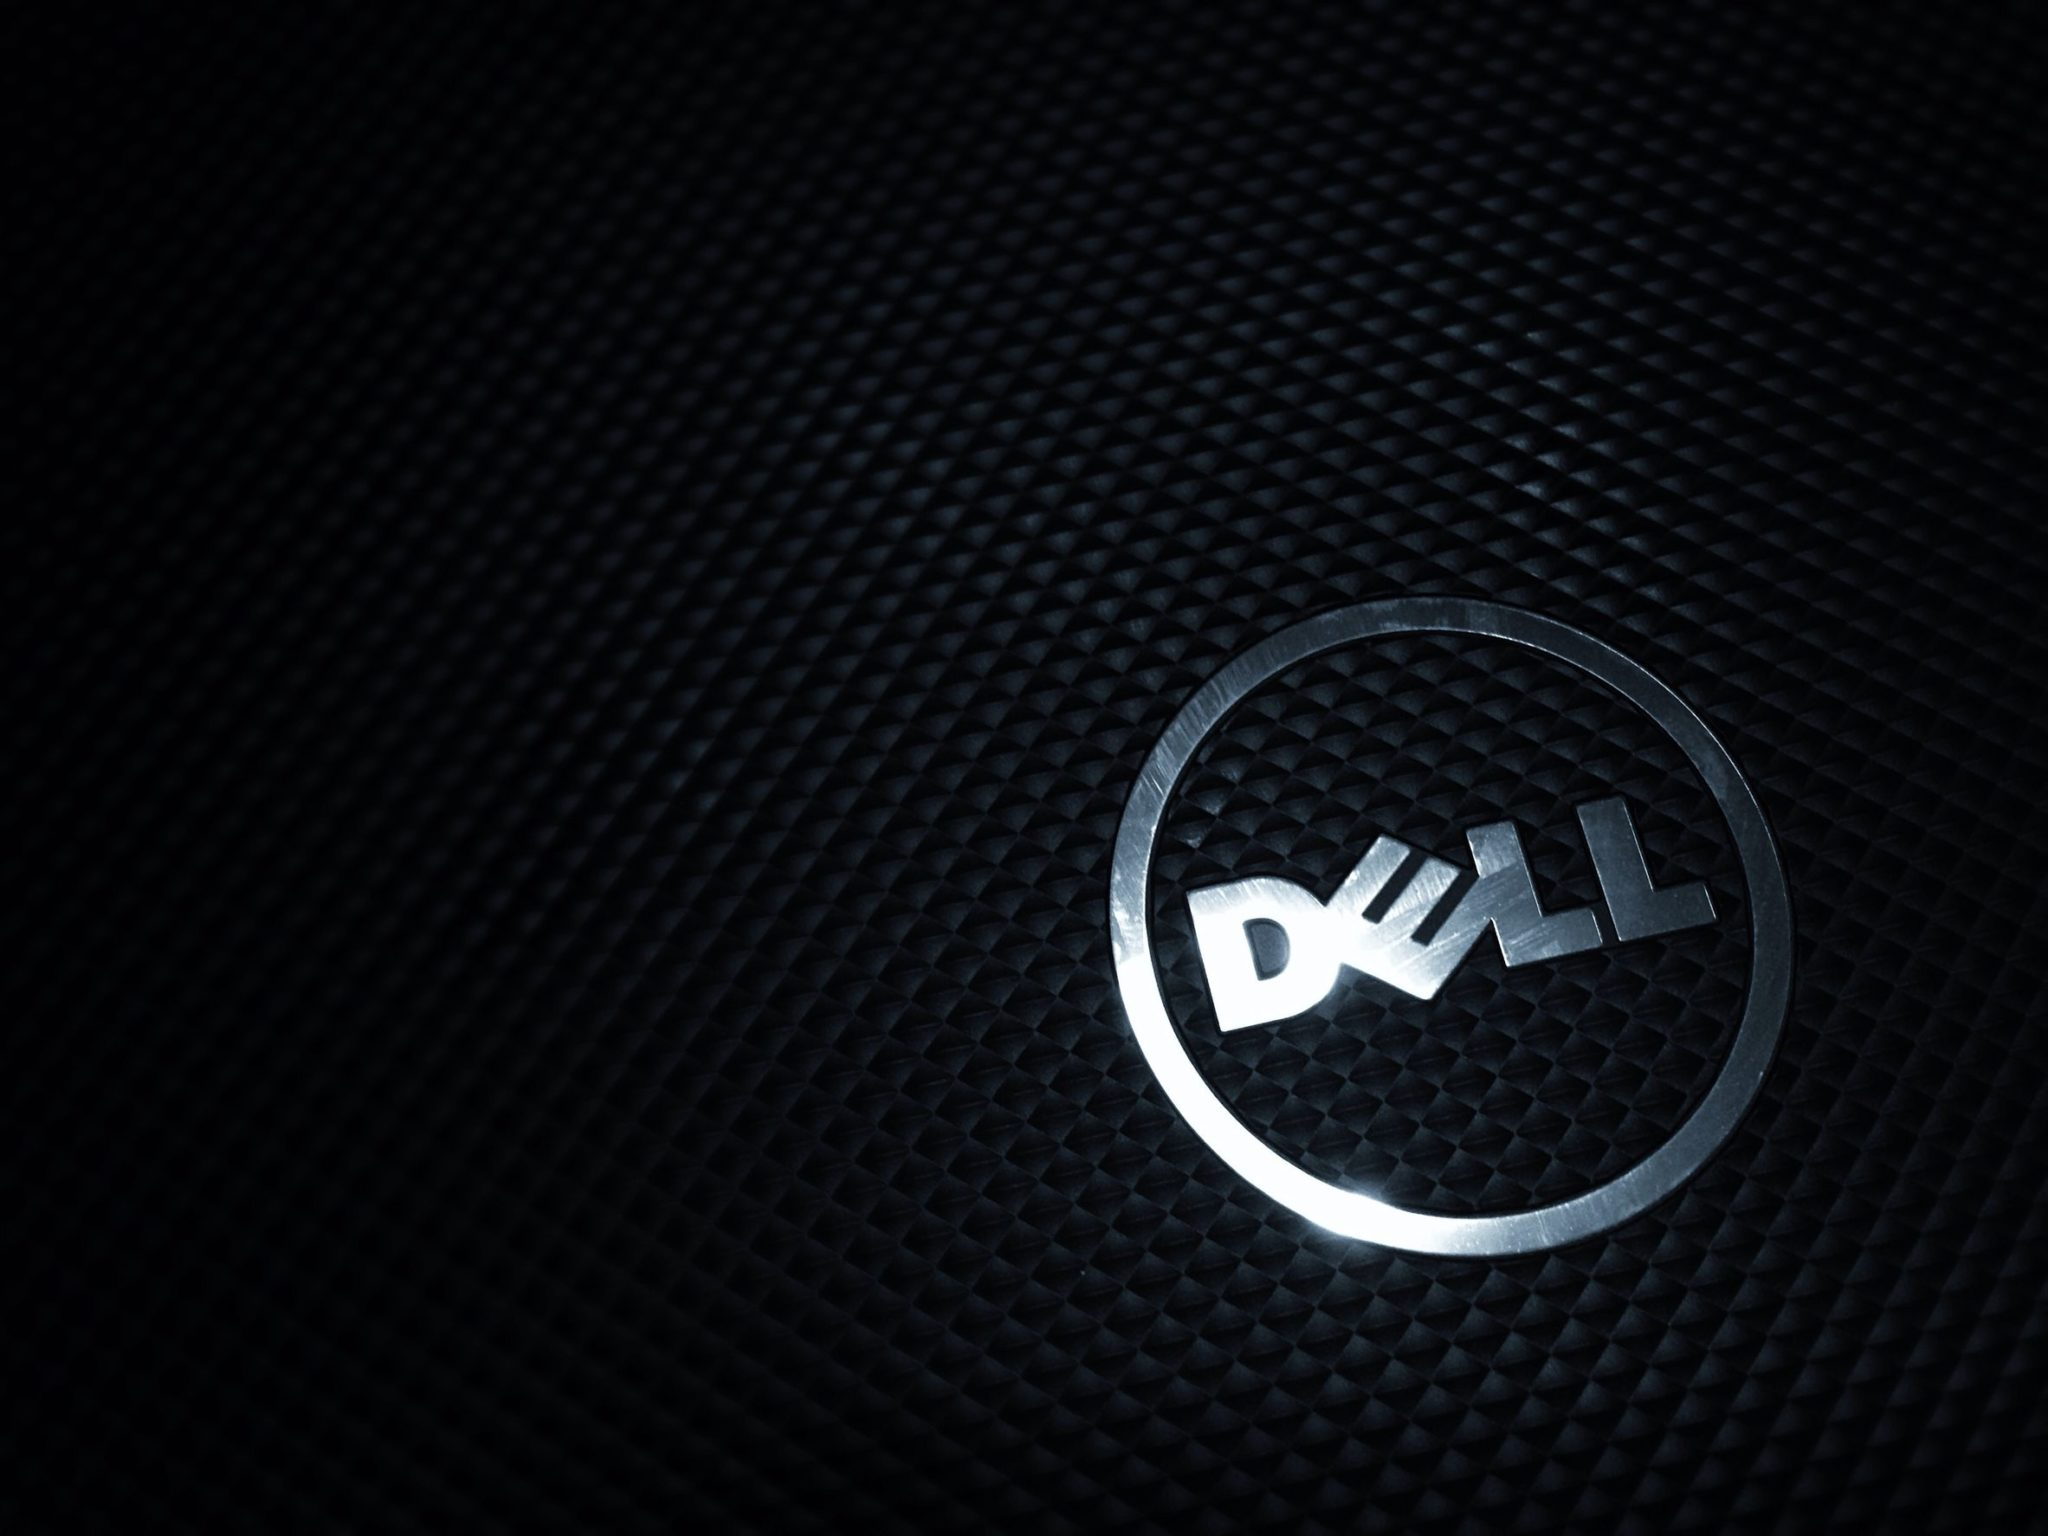 Dell intros enterprise IoT bundles for resellers to target food, gas, manufacturing